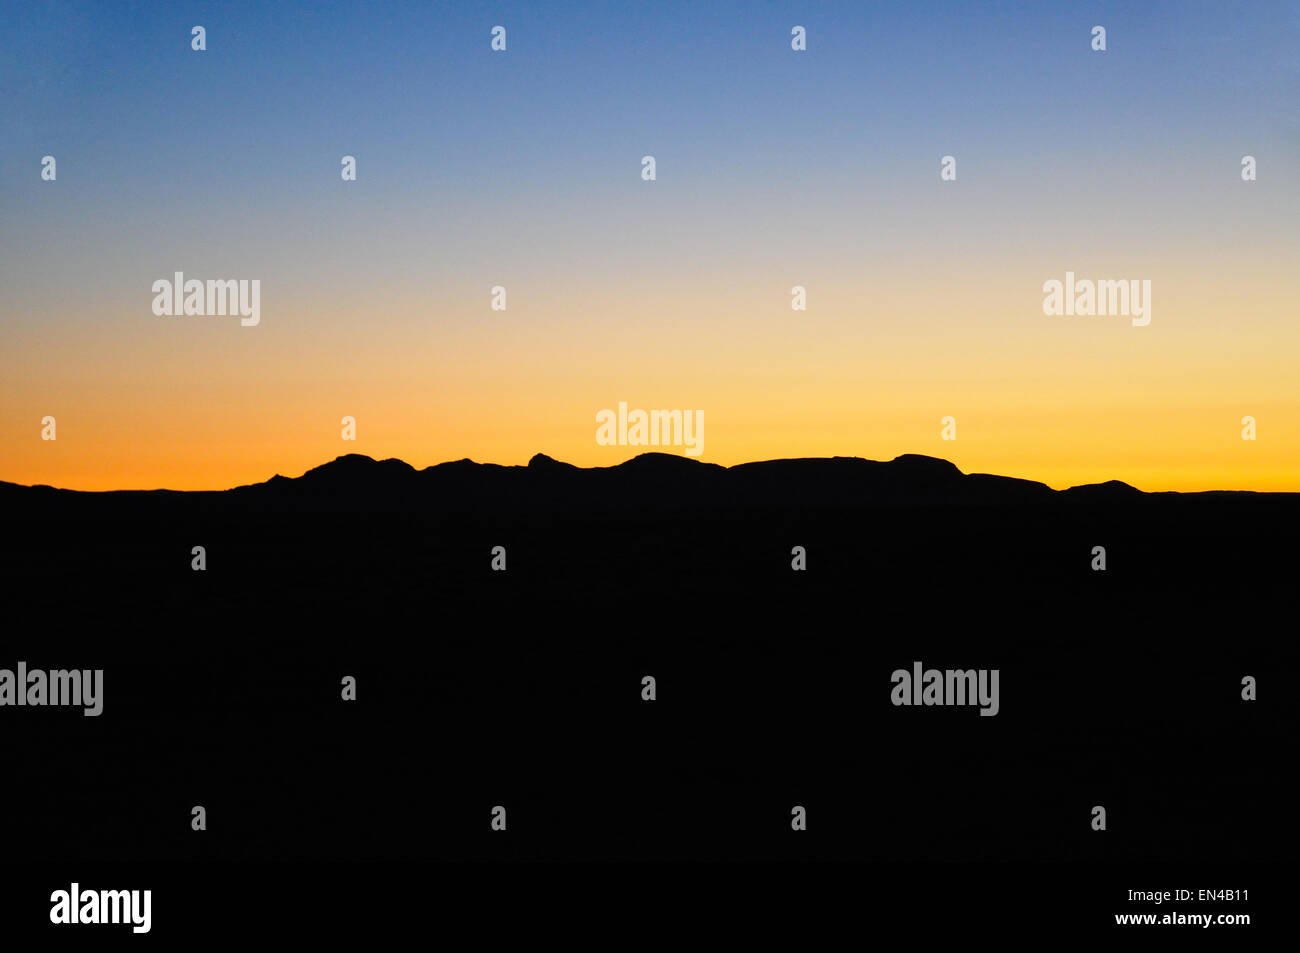 Sunset at Namib Naukluft Lodge, Solitaire, Namib Desert, Republic of Namibia - Stock Image